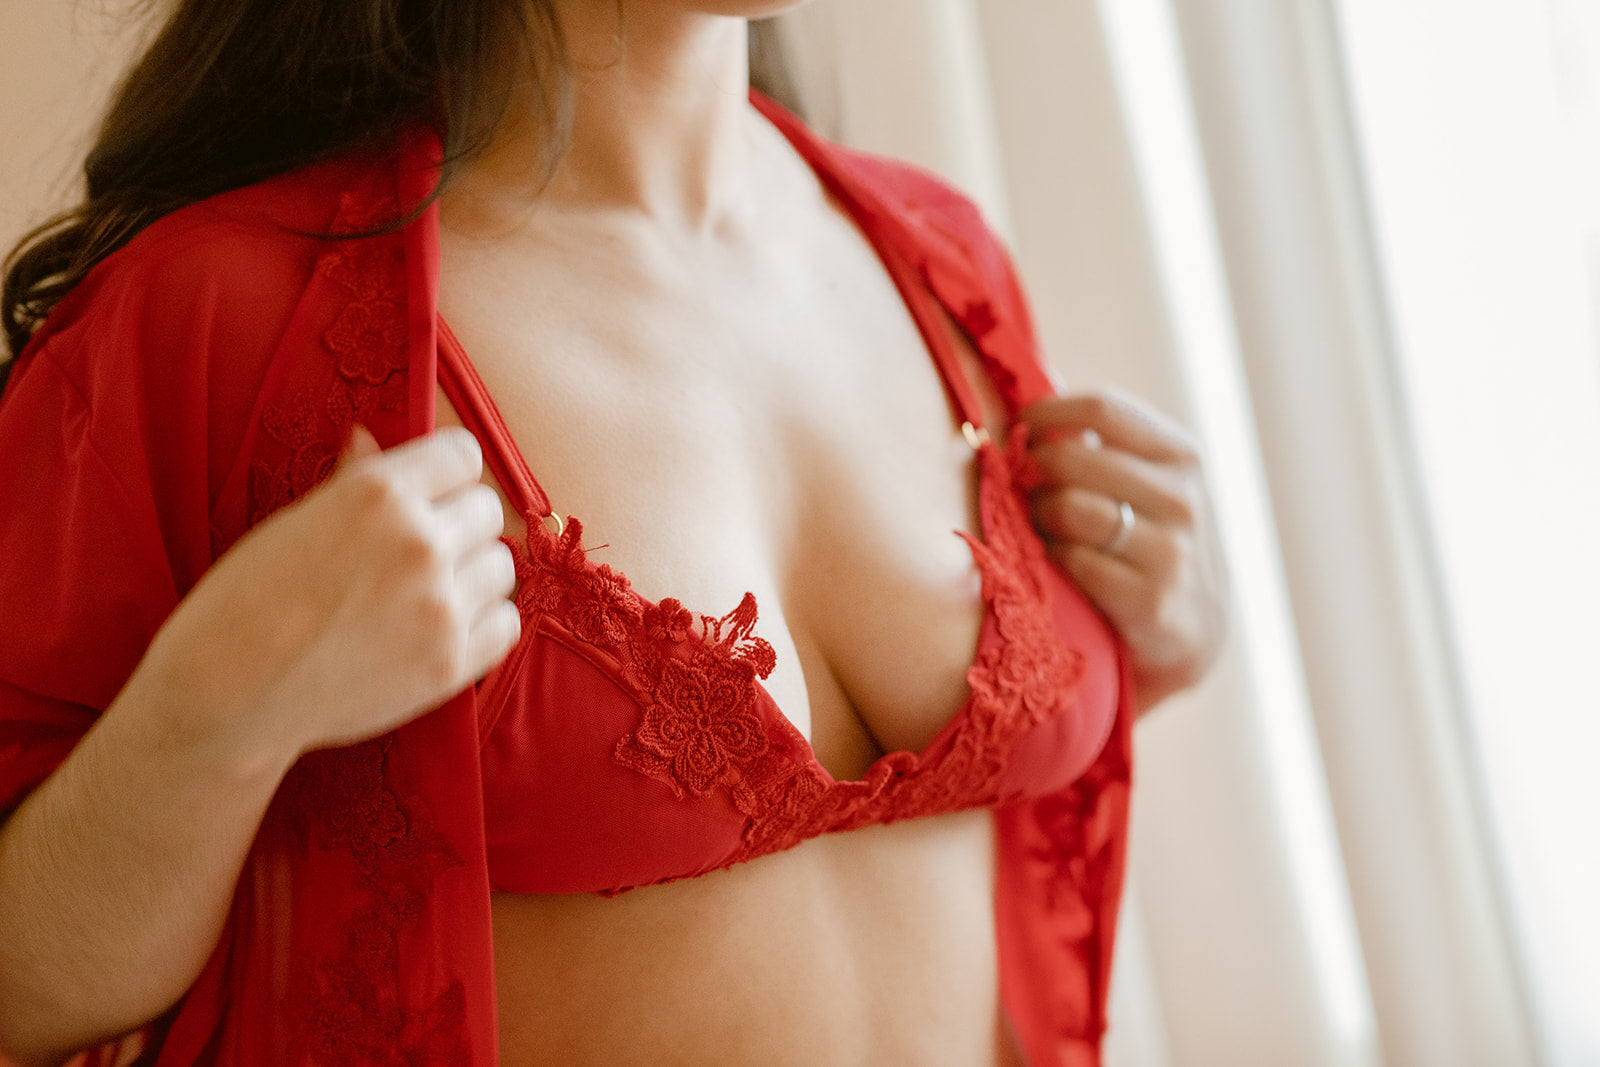 red lingerie sets for gift